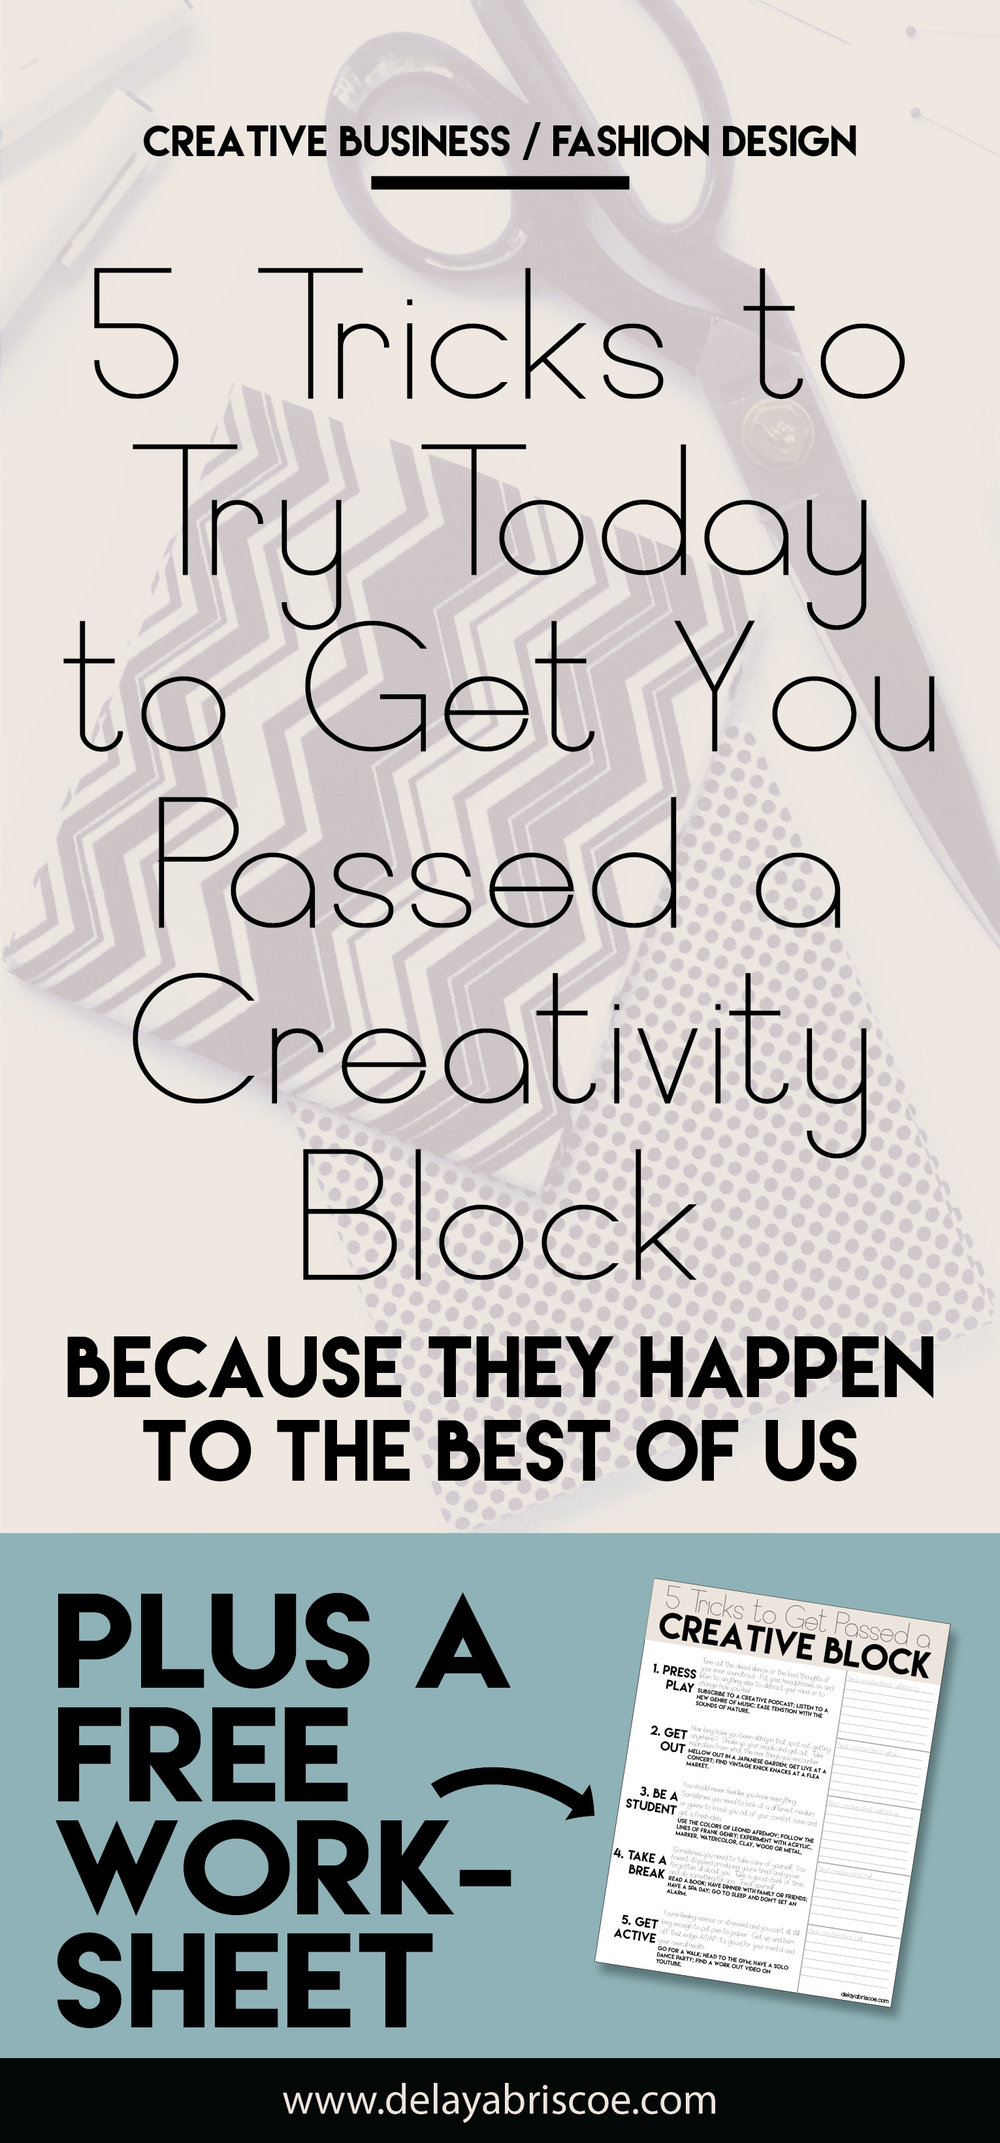 GET-PASSED-CREATIVE-BLOCK